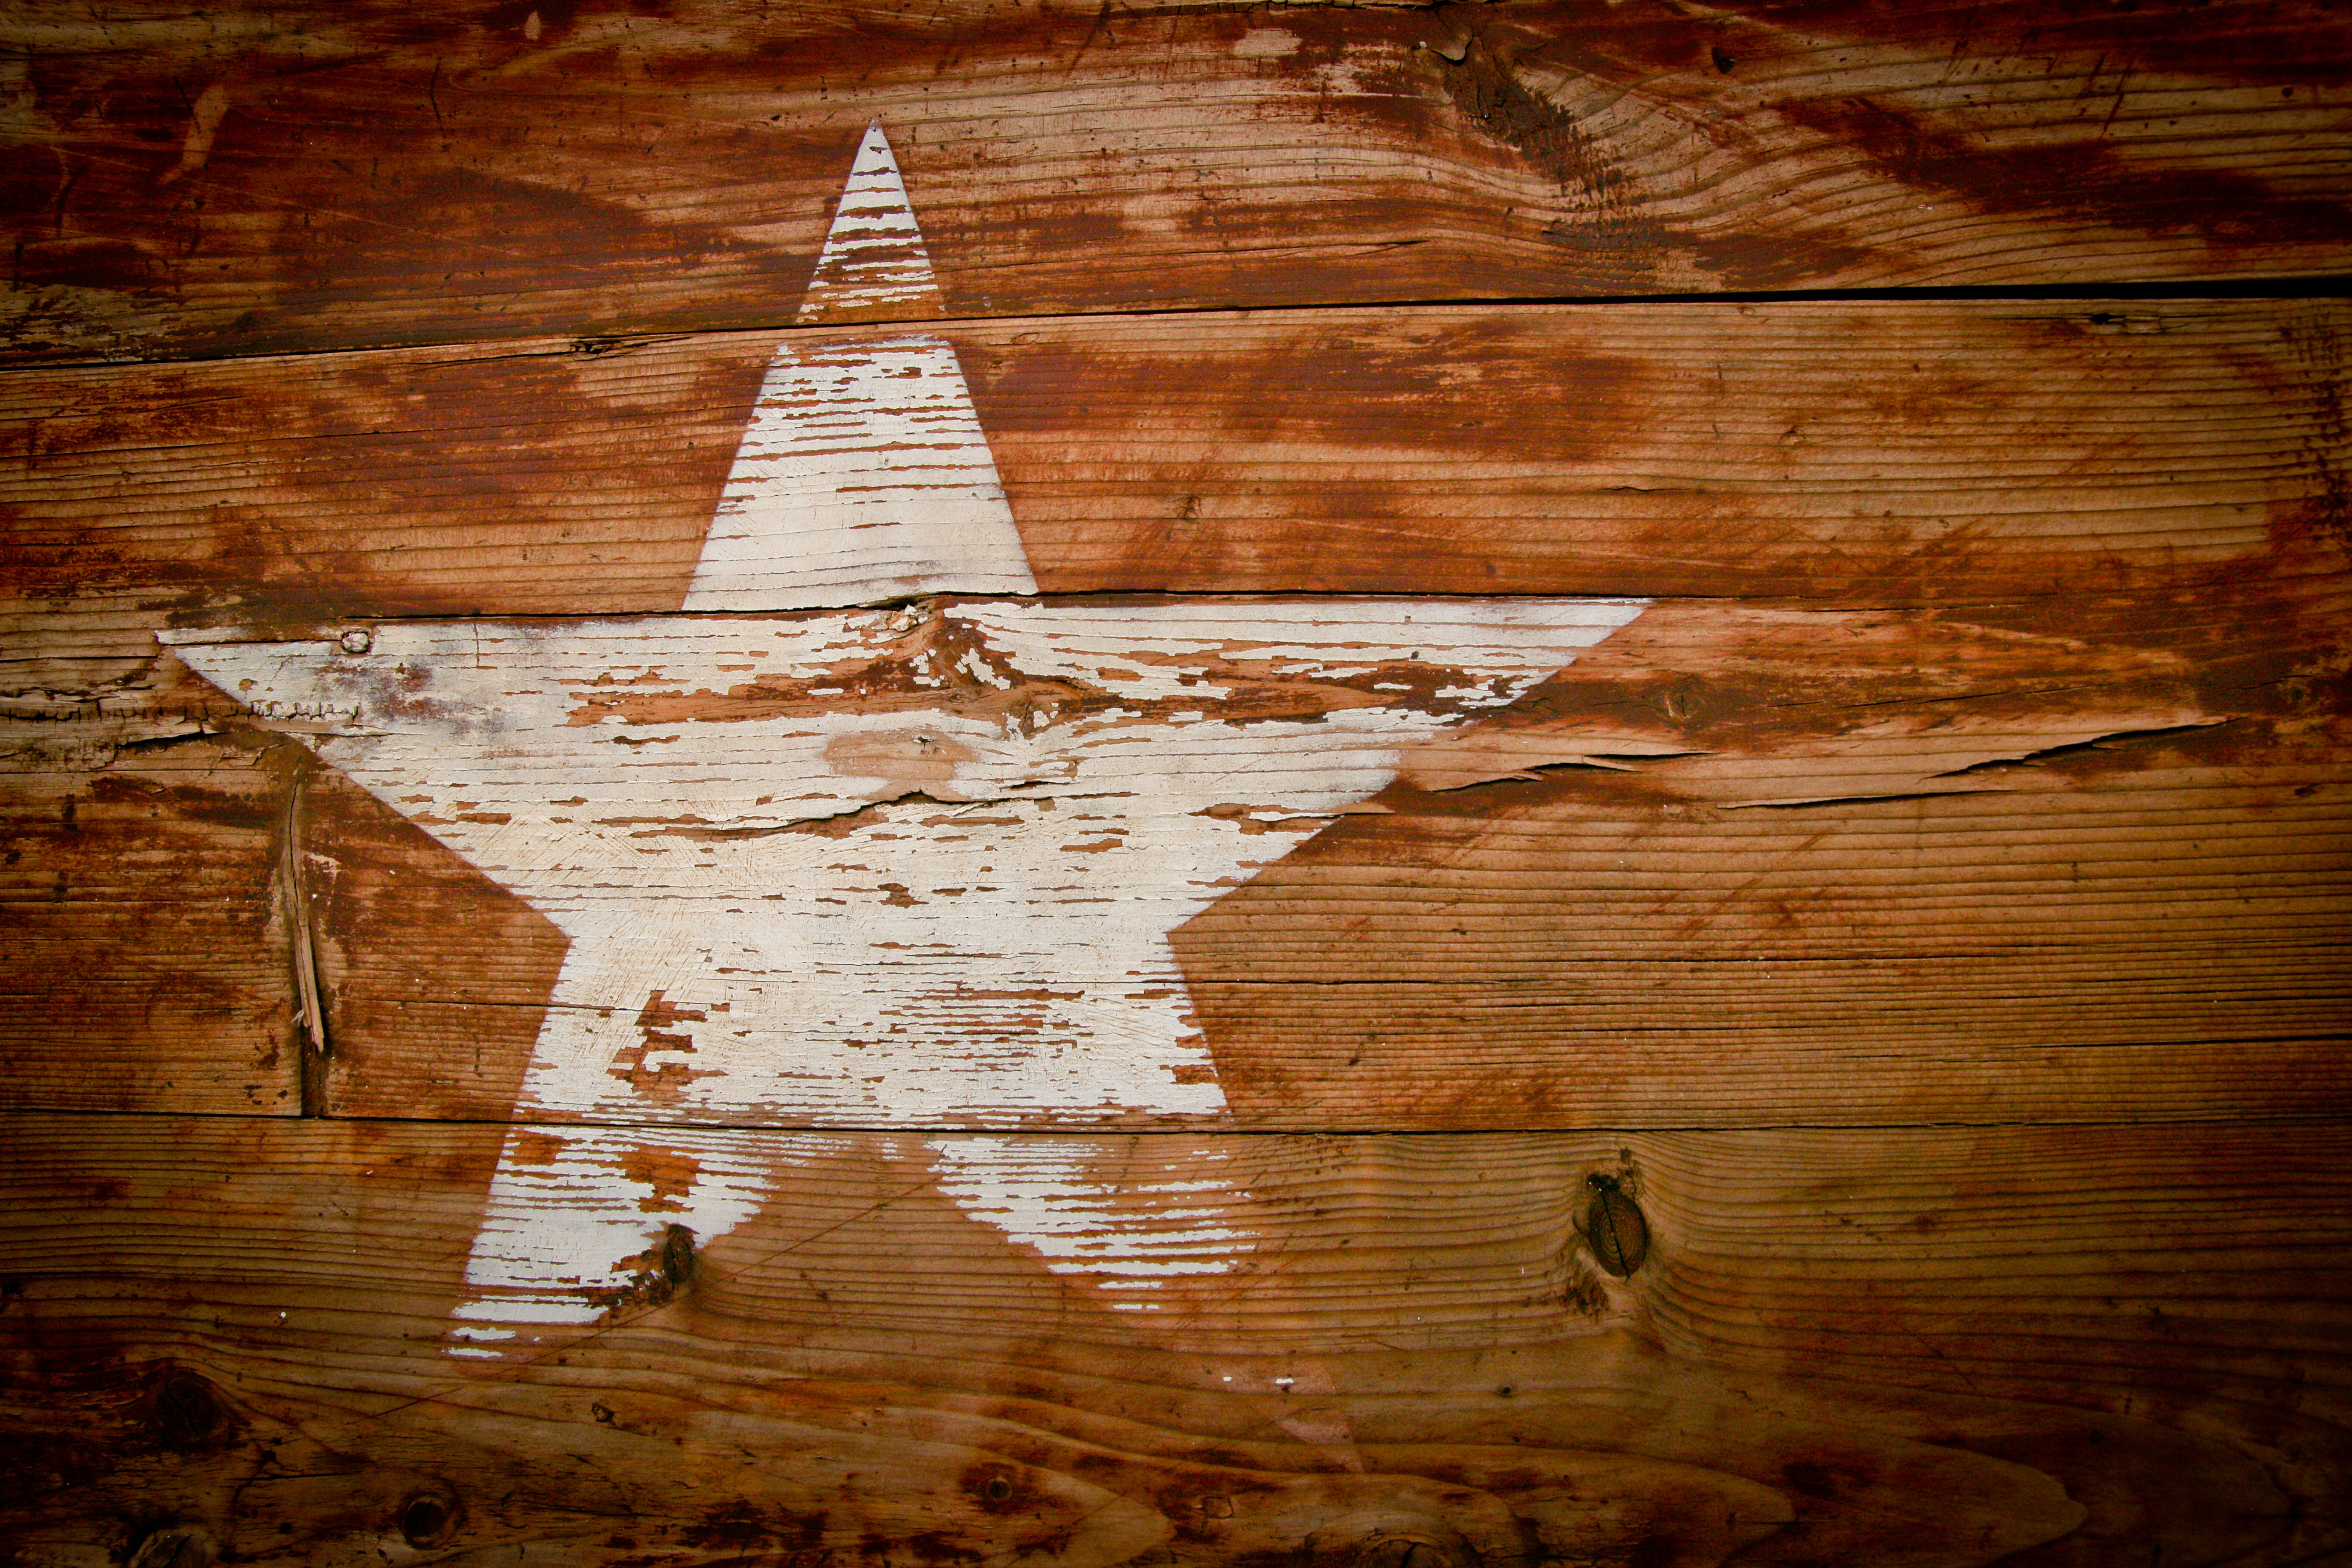 Travel to Texas & Discover The Lone Star State